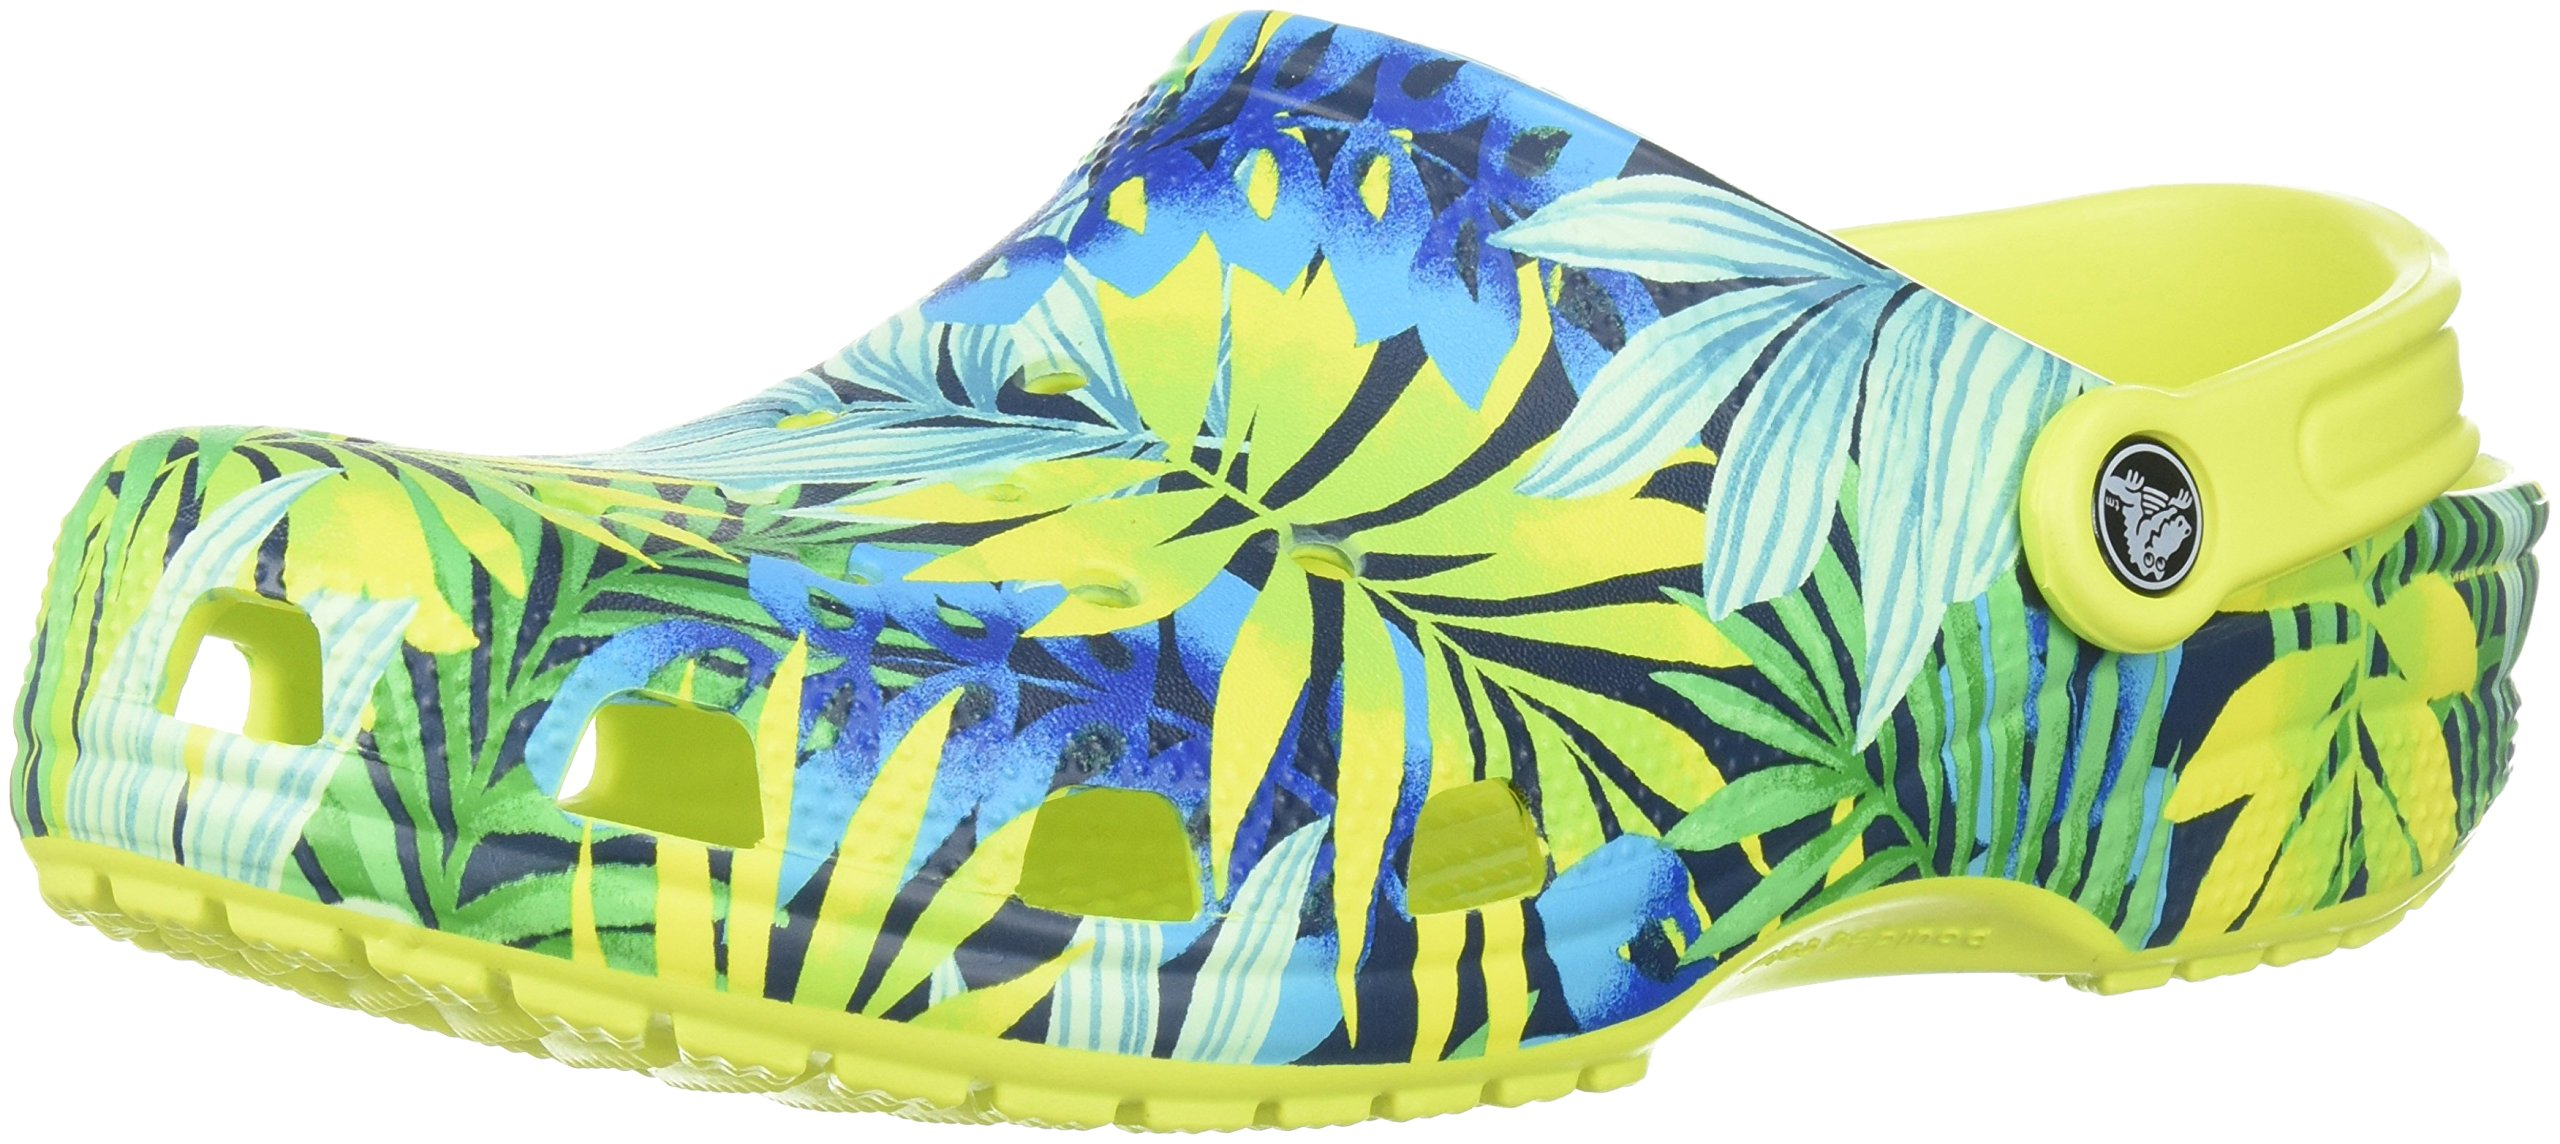 Crocs Unisex Classic Printed Clog Mule, Tennis Ball Green/Cerulean Blue, 4 US Men/6 US Women by Crocs